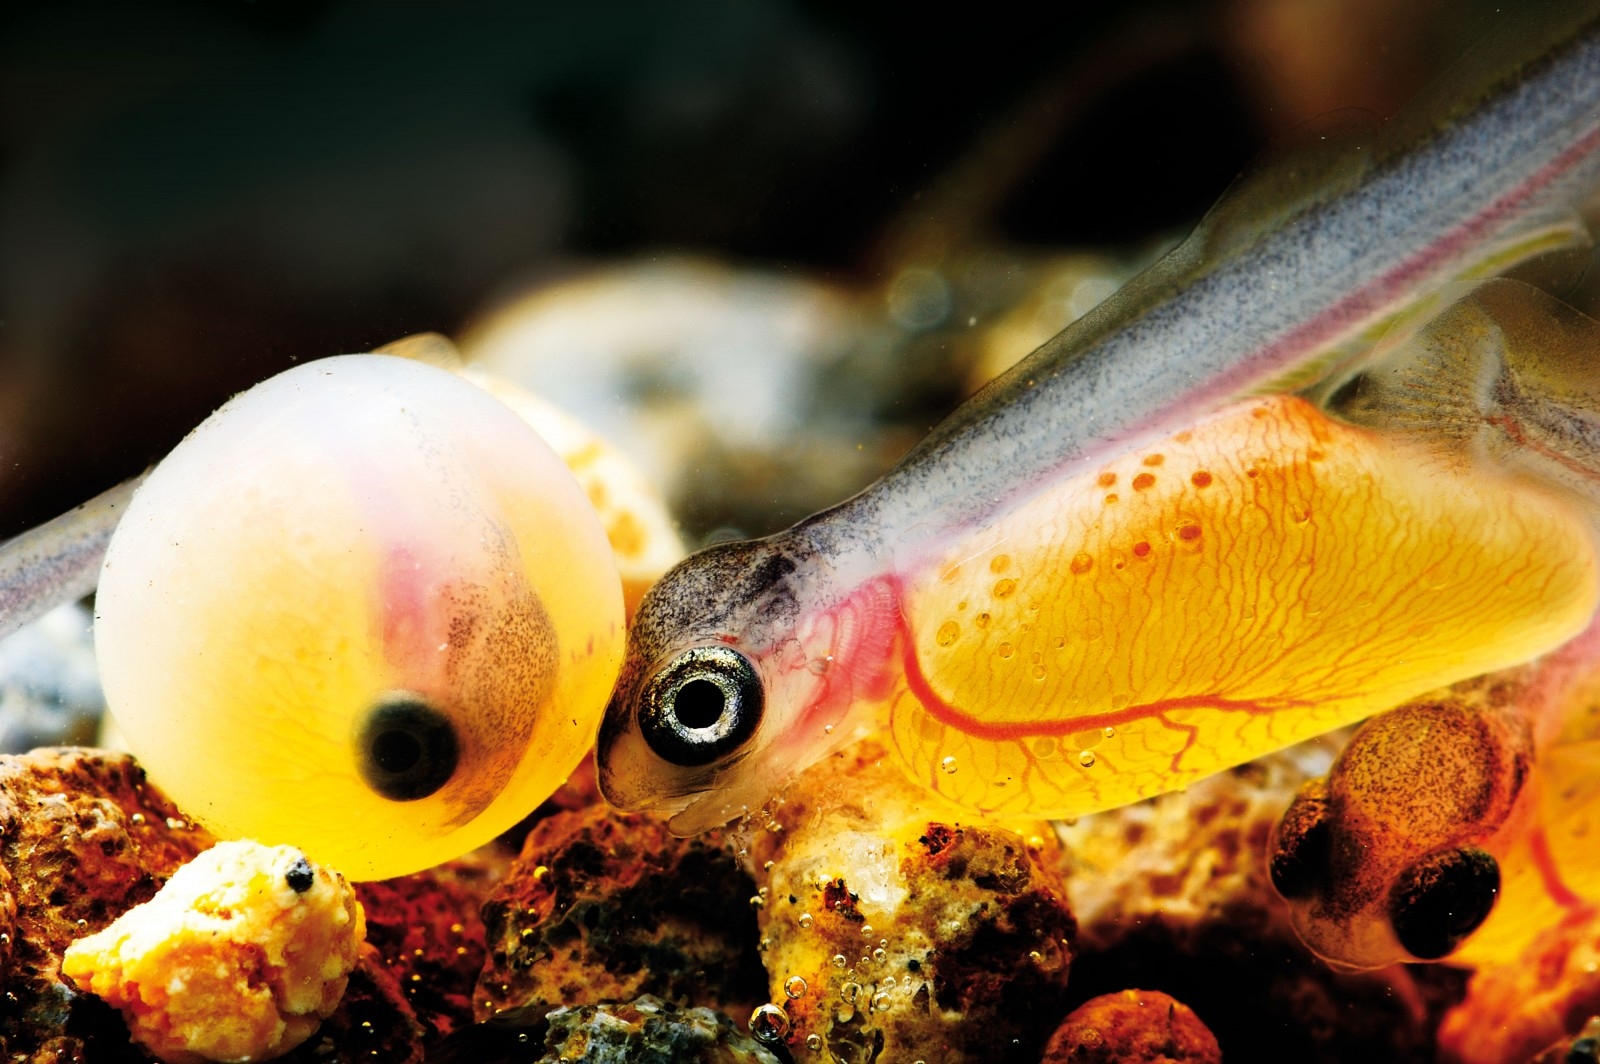 A newly-hatched alevin nudges a sibling that is yet to hatch. Clearly visible are the blood vessels in the yolk sac and the brain cap over the eyes where the top of the skull will form. The eyes are the most distinct feature, but the developing dorsal fin on the back and the blood-rich gills behind the eyes are also obvious. Rainbow trout choose to breed in winter in rivers with a moderate flow and gravel bottom. Hard stones such as granite or greywacke provide gaps for the eggs to fall into and a good surface for algae growth and insect production to provide food for the emerging fry. Although pumice is the predominant geology in the Volcanic Plateau —which includes Taupo and the Rotorua lakes—it is more mobile and has fine particles that tend to seal the gaps around the developing eggs, depriving them of oxygen. Egg survival in pumice is very low, a reason for the man-made trout hatchery in Rotorua, which produces up to 100,000 one-year-old fish for the local lakes each year.